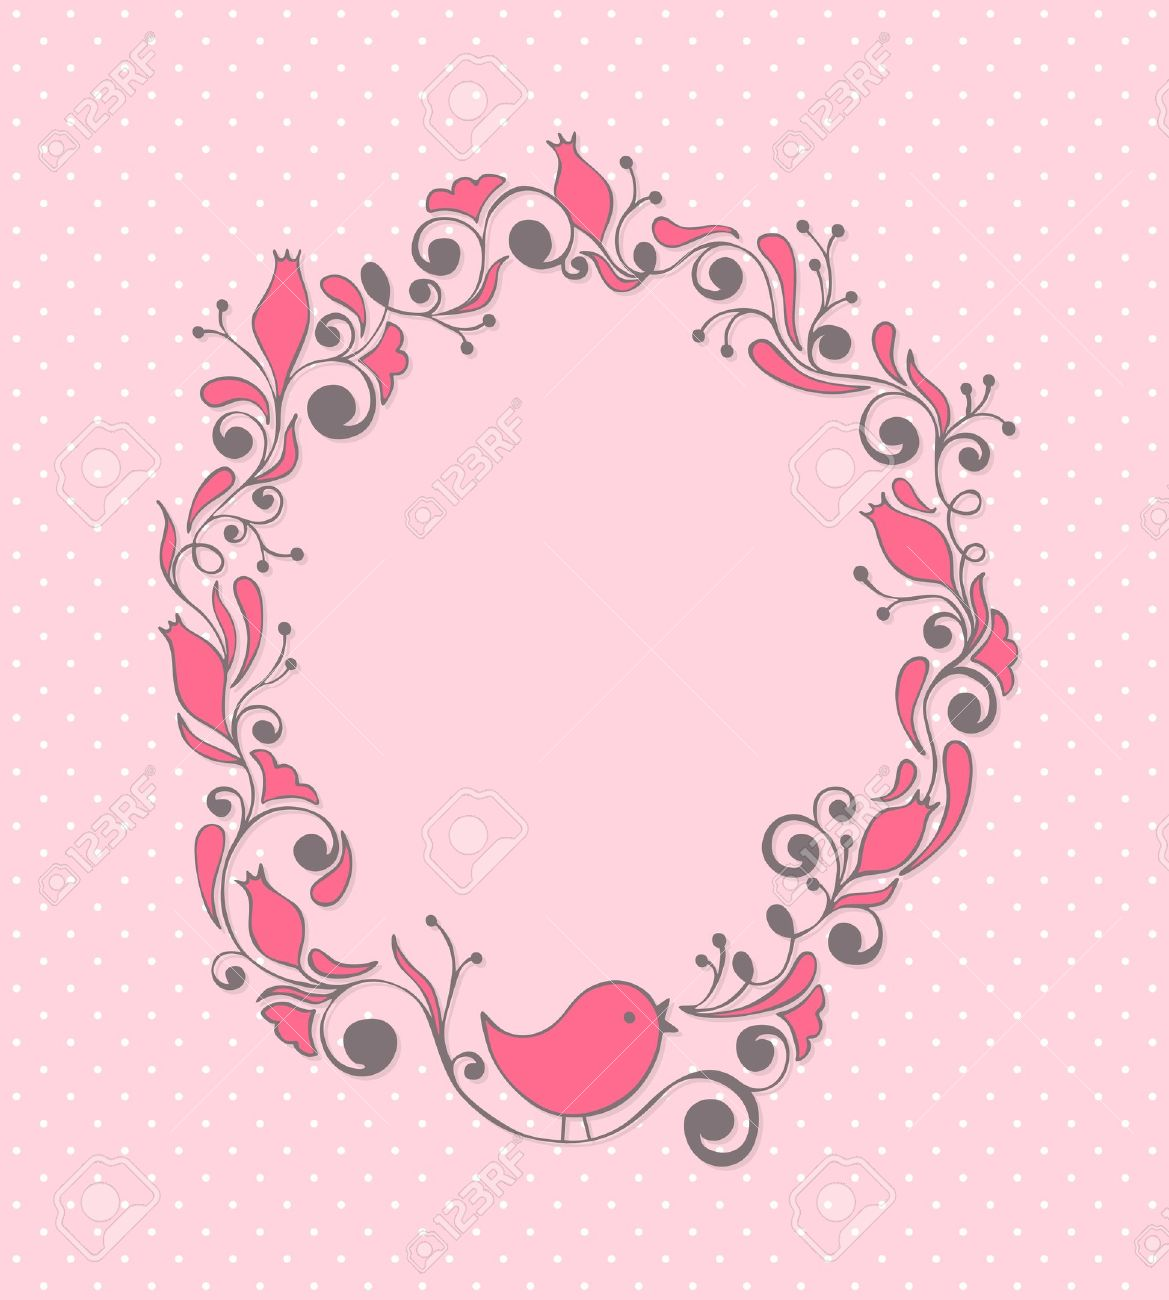 Cute girly floral frame with bird Stock Vector - 9833601